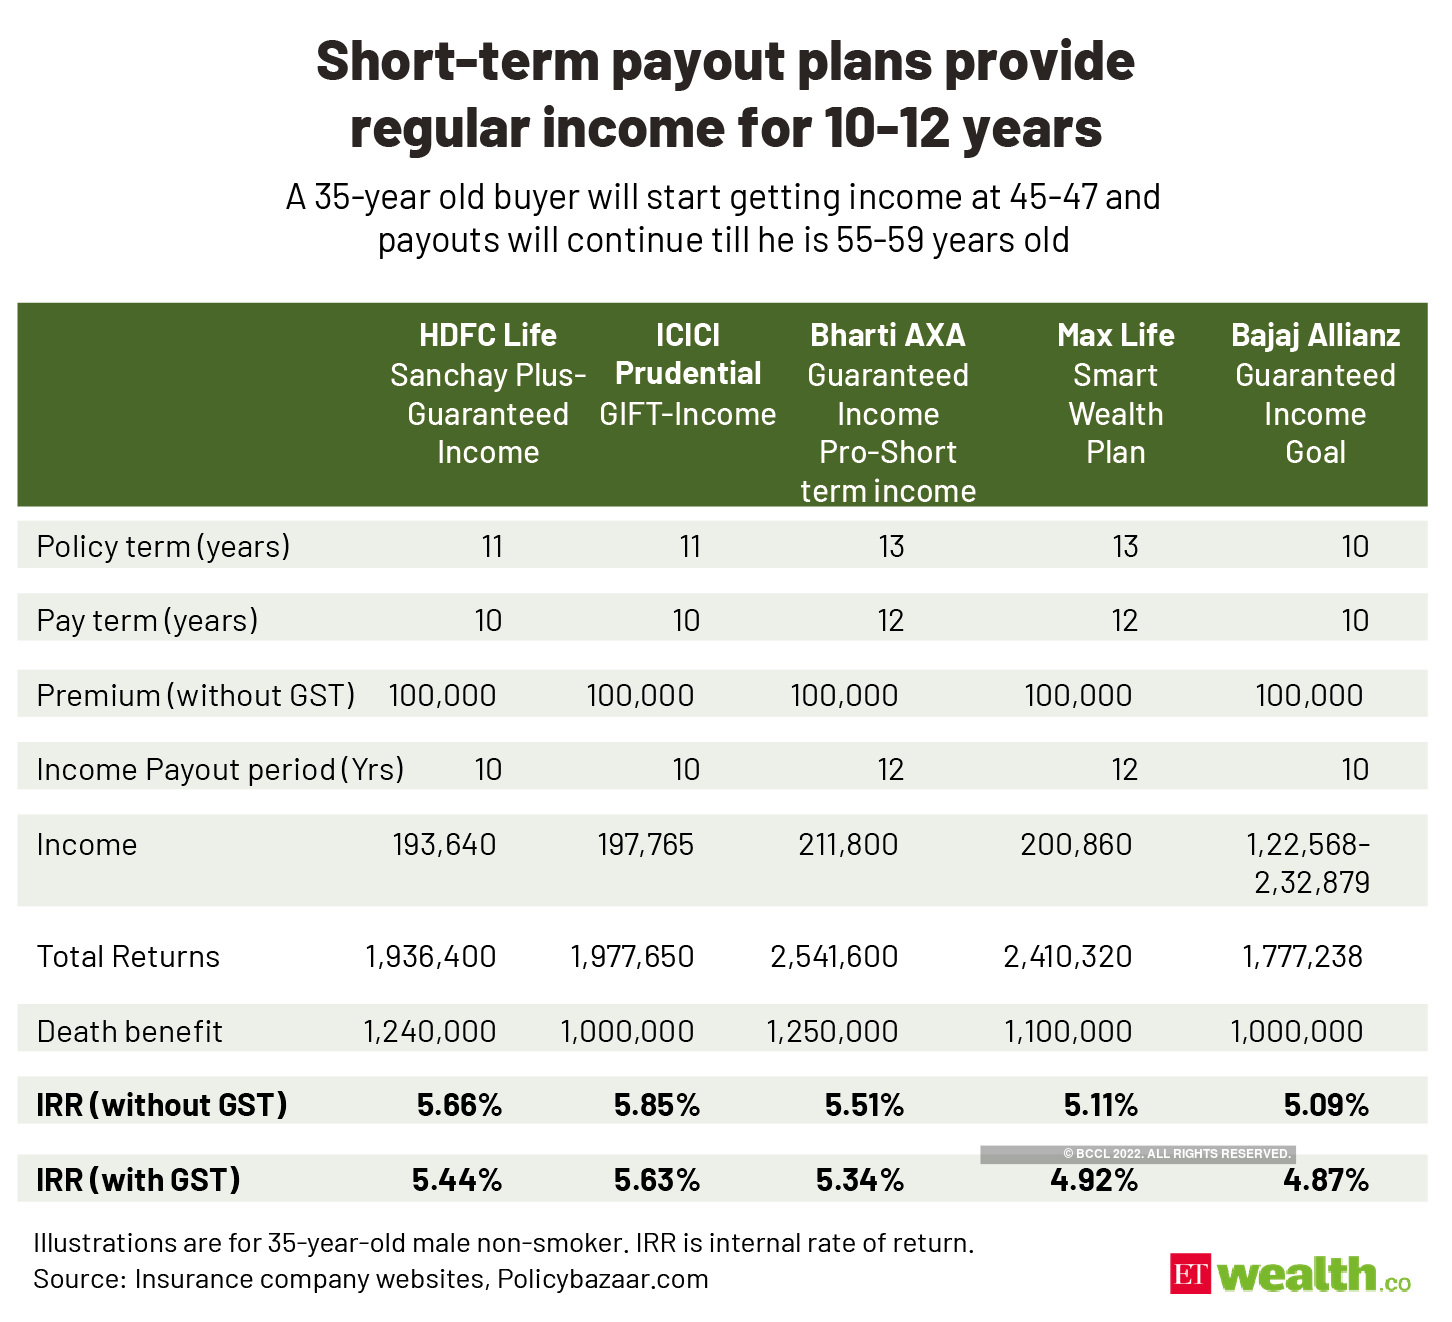 Short-term payout plans provide _regular income for 10-12 years@2x